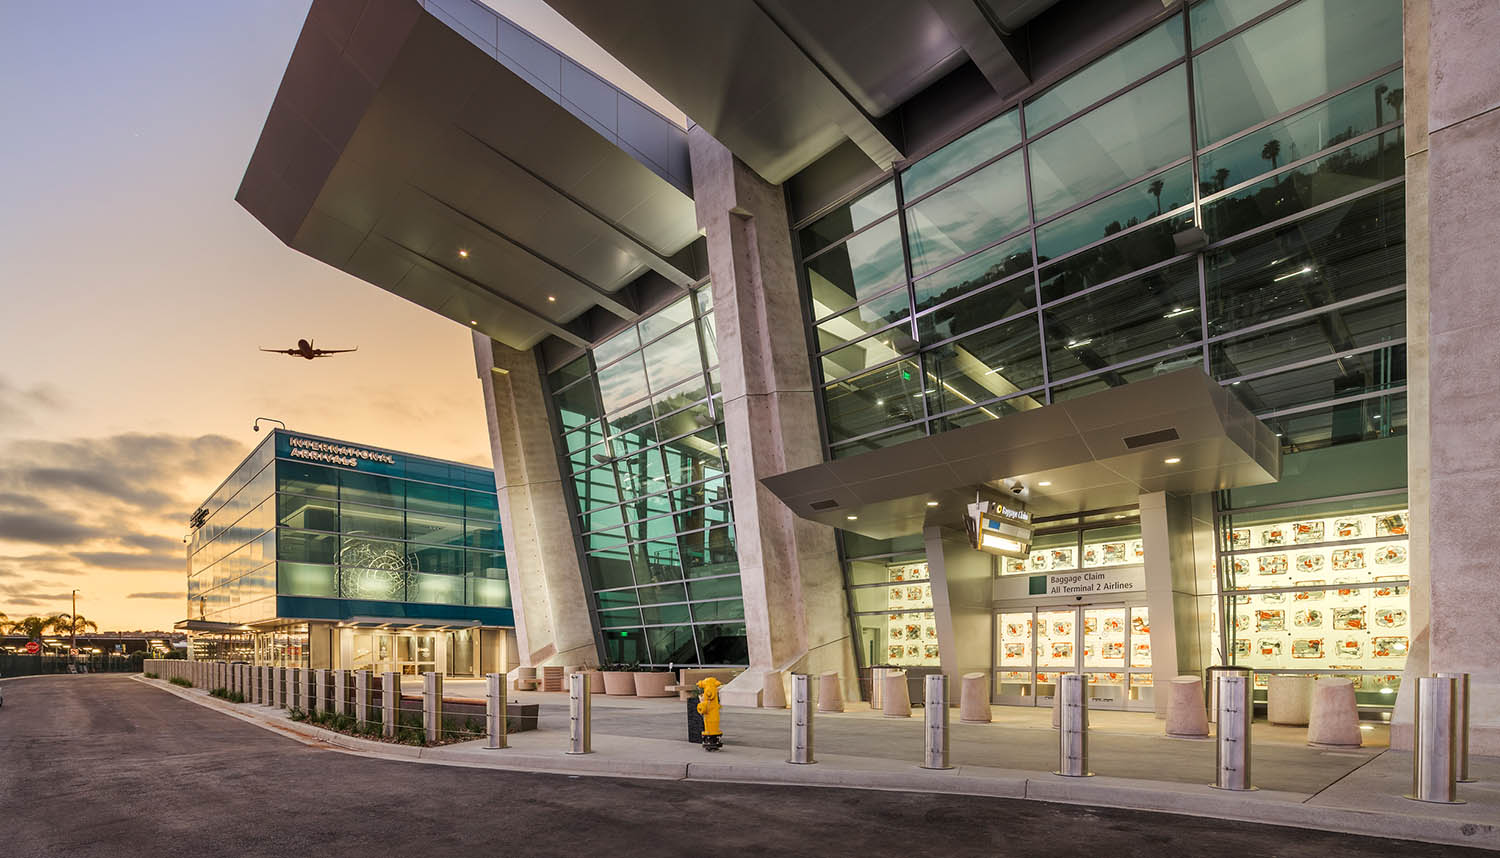 SDIA TERMINAL 2 WEST FEDERAL INSPECTION SERVICES Project Value: $229.4 M